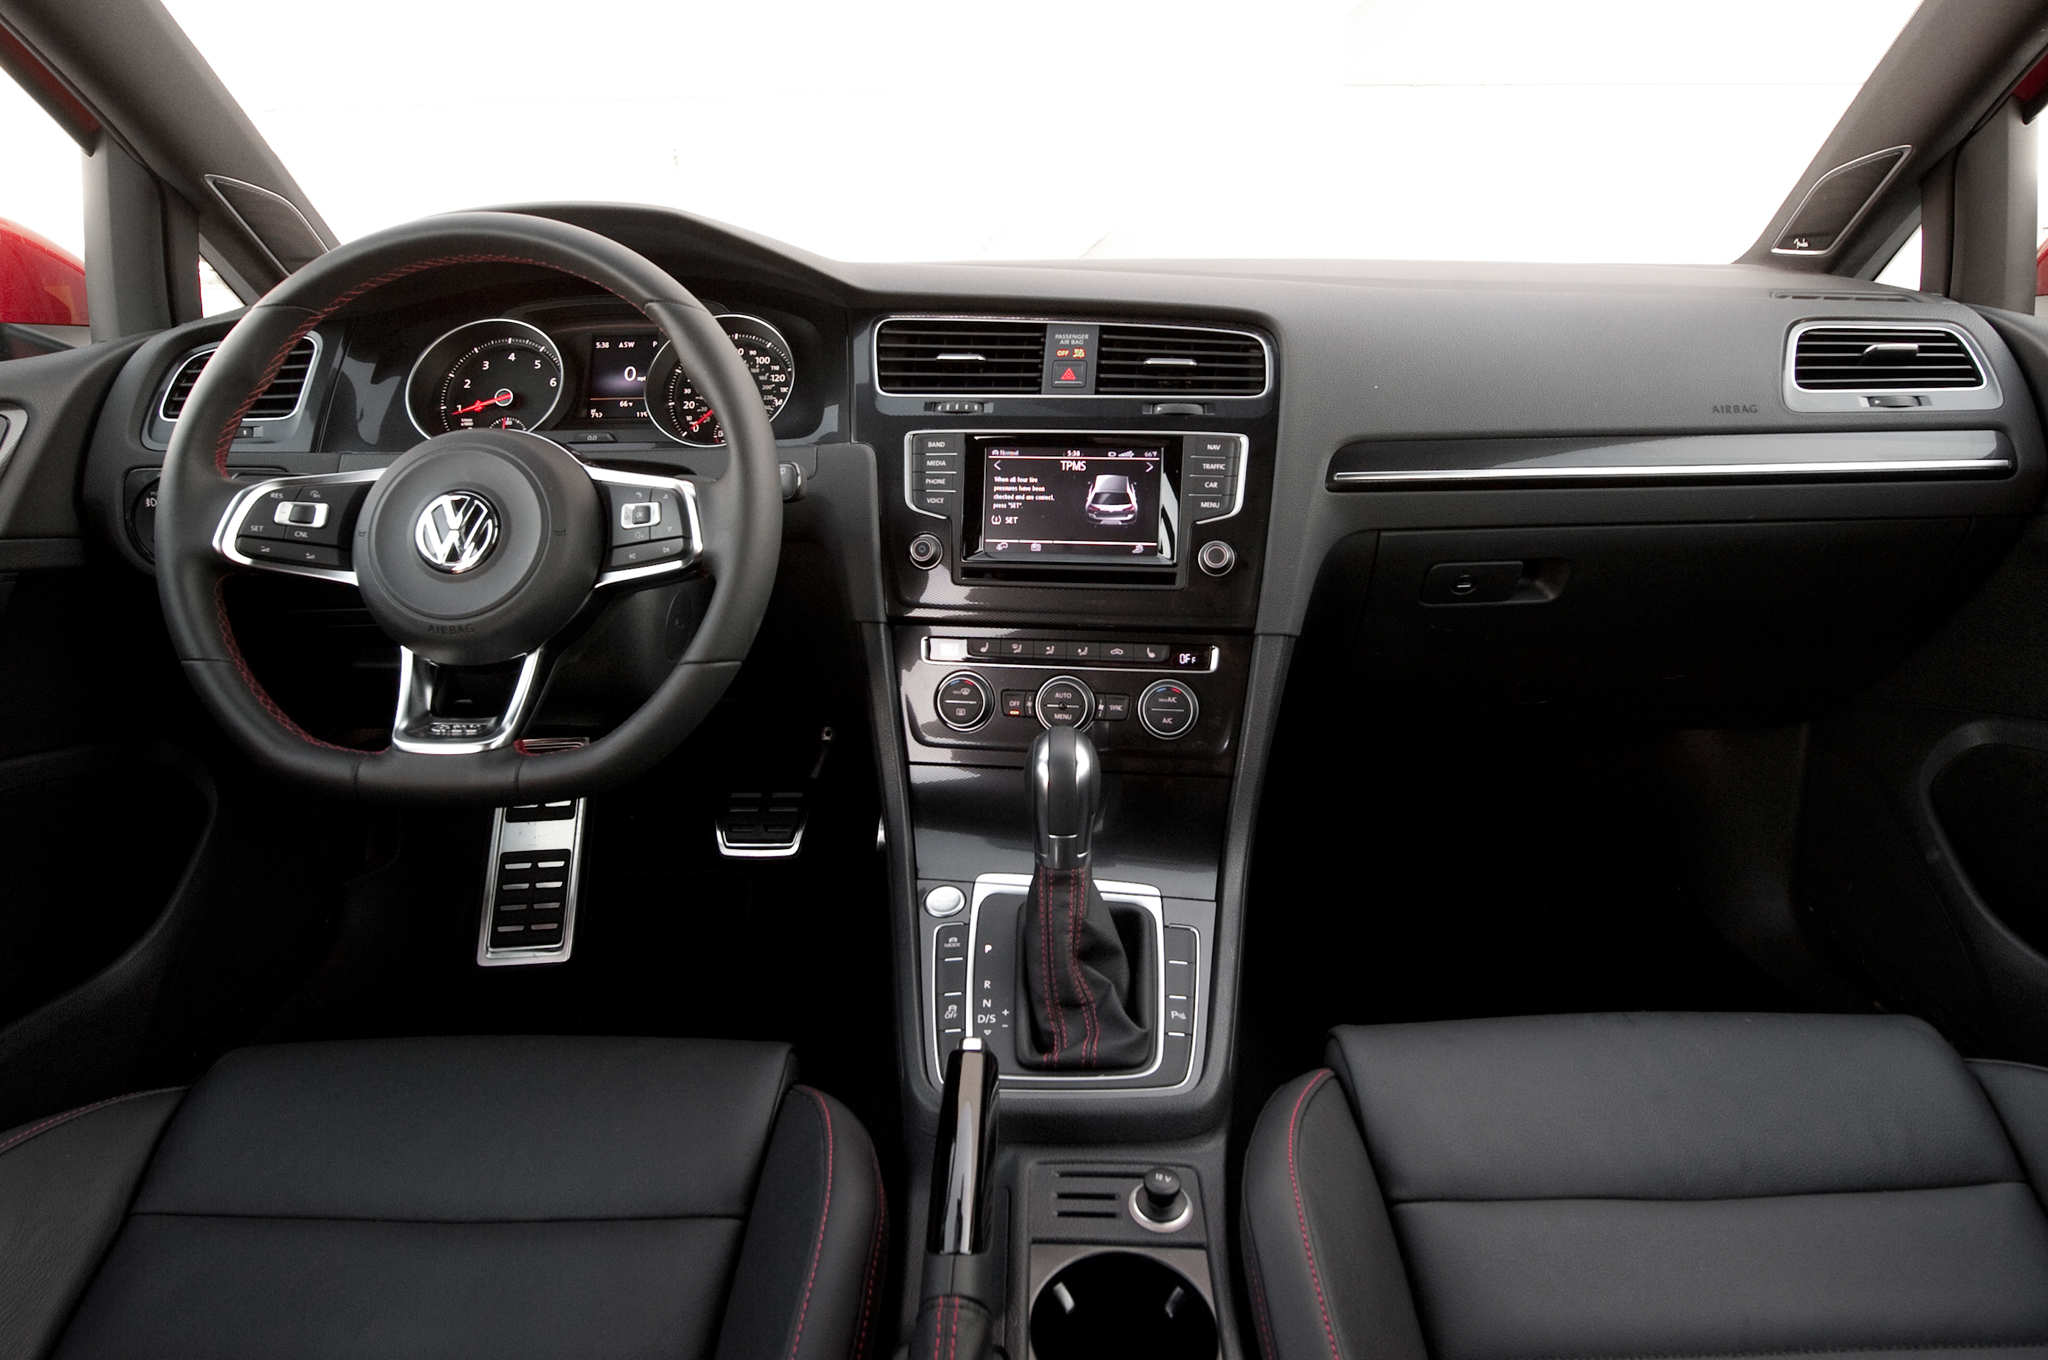 2015 Volkswagen Golf Gti Interior Dash And Panel (View 19 of 55)